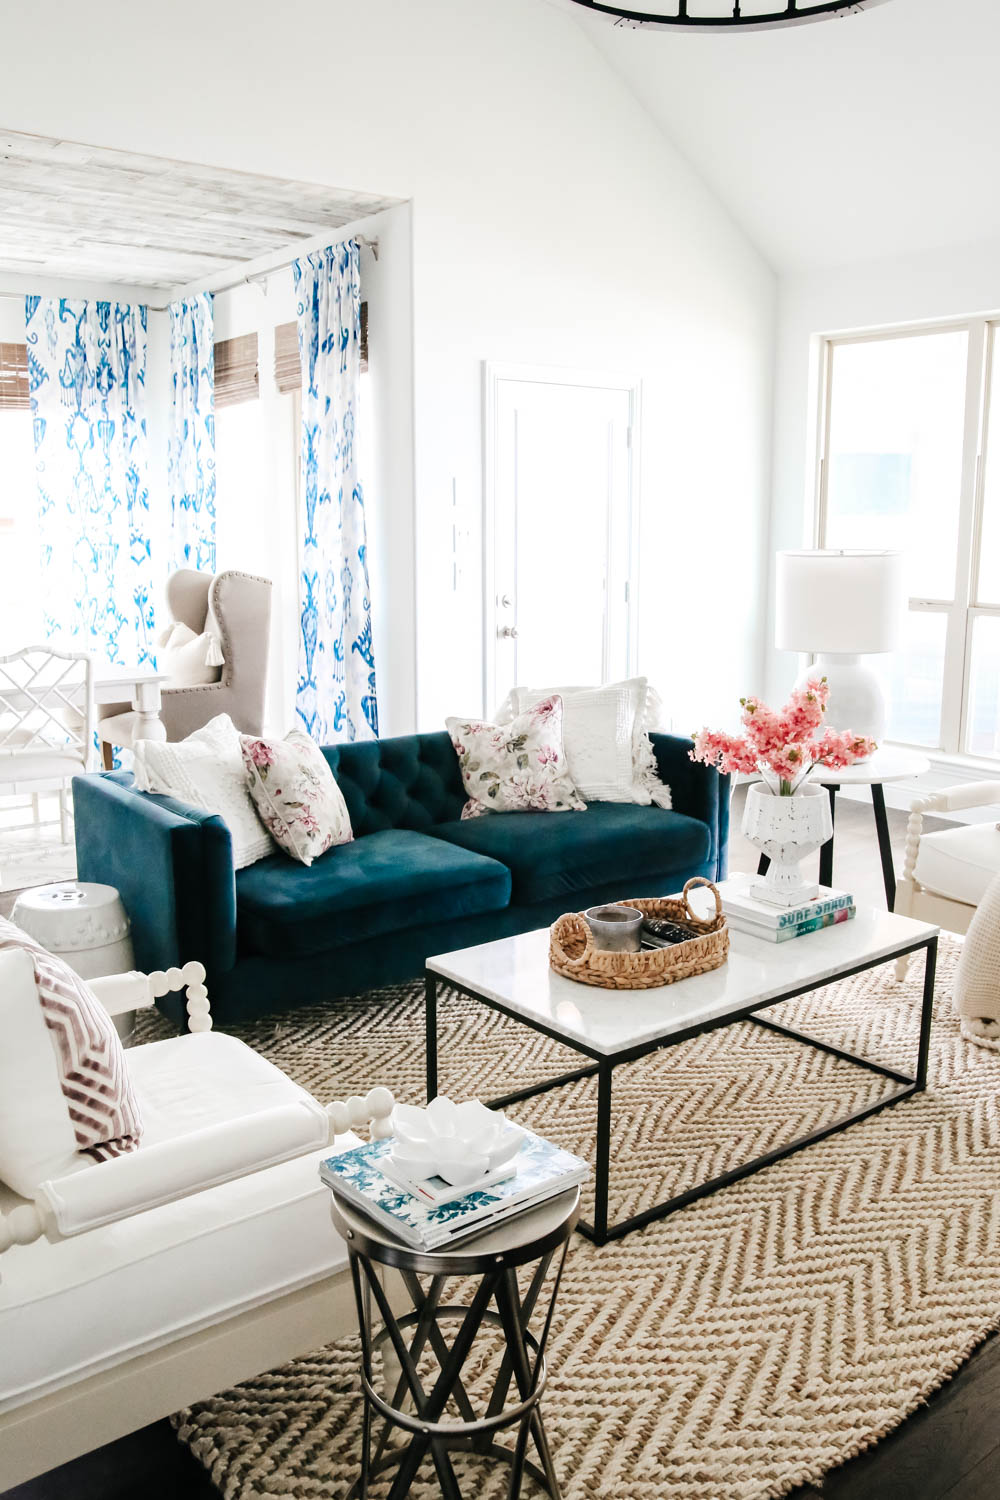 Navy blue sofa, marble and iron coffee table, white painted walls, blue and white decor accents with pops of lavender. #livingroominspo #springdecor #homedecor #ABlissfulNest